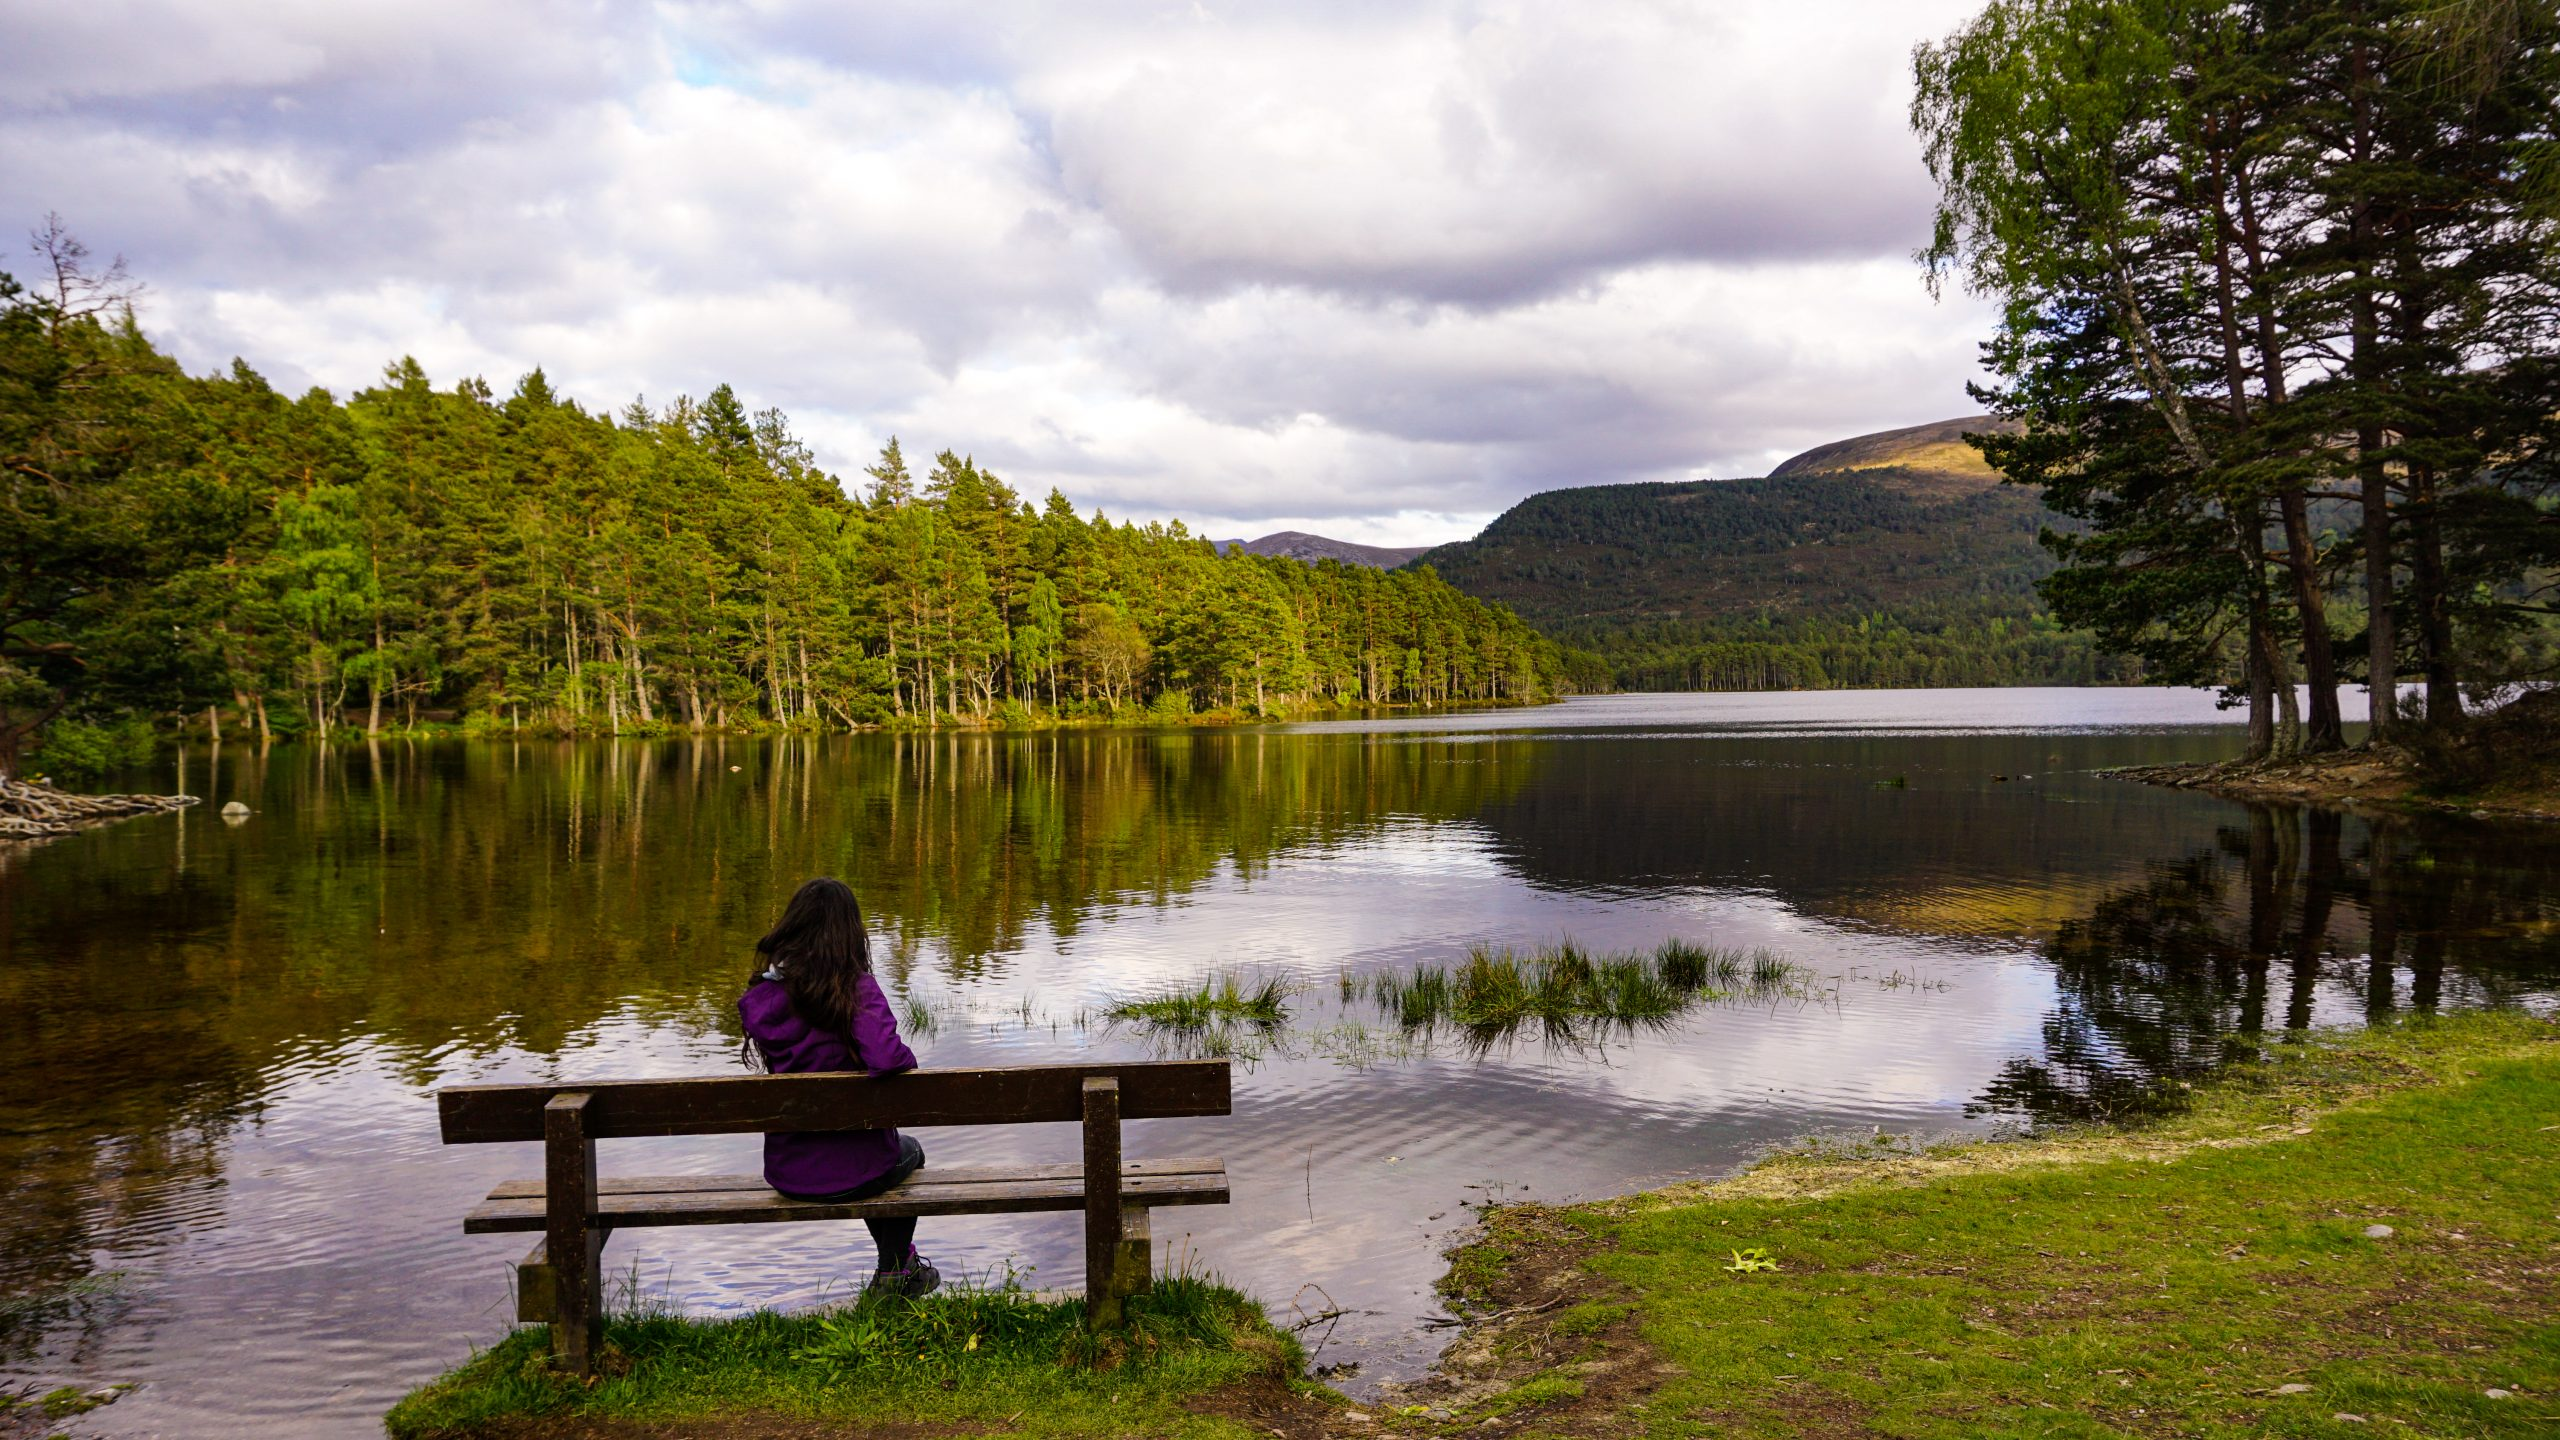 3 Days in Aviemore, Scotland: An itinerary for nature lovers without a car